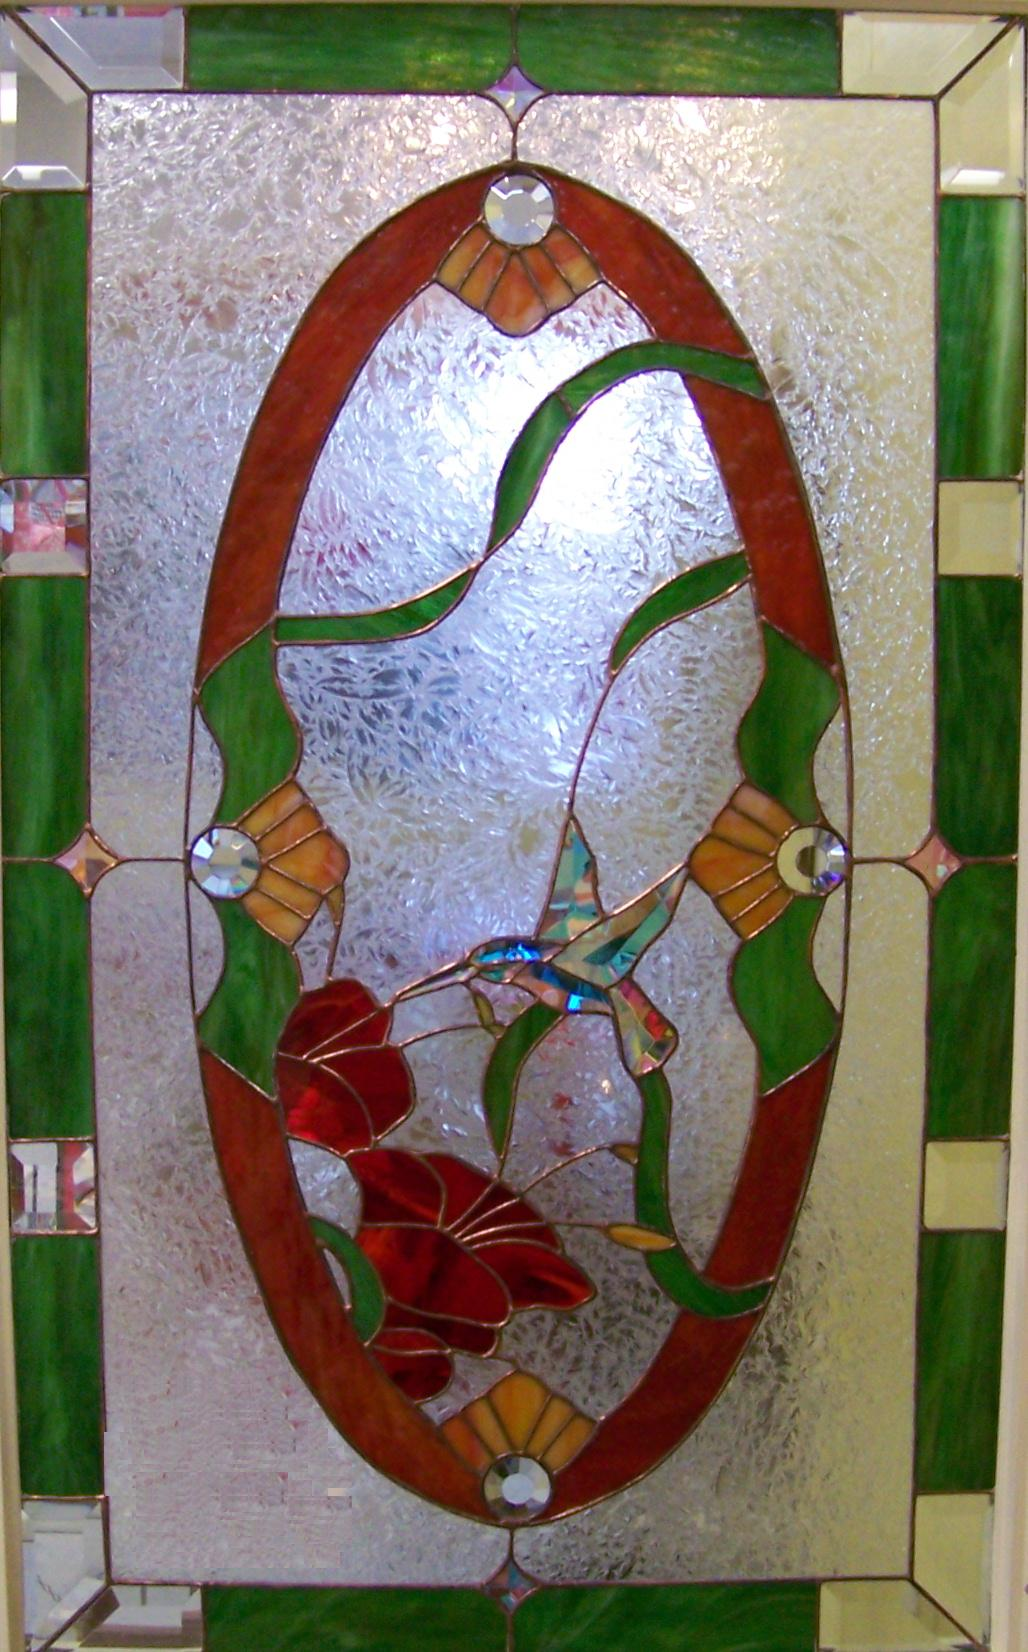 lilies ribbon green garden stained glass